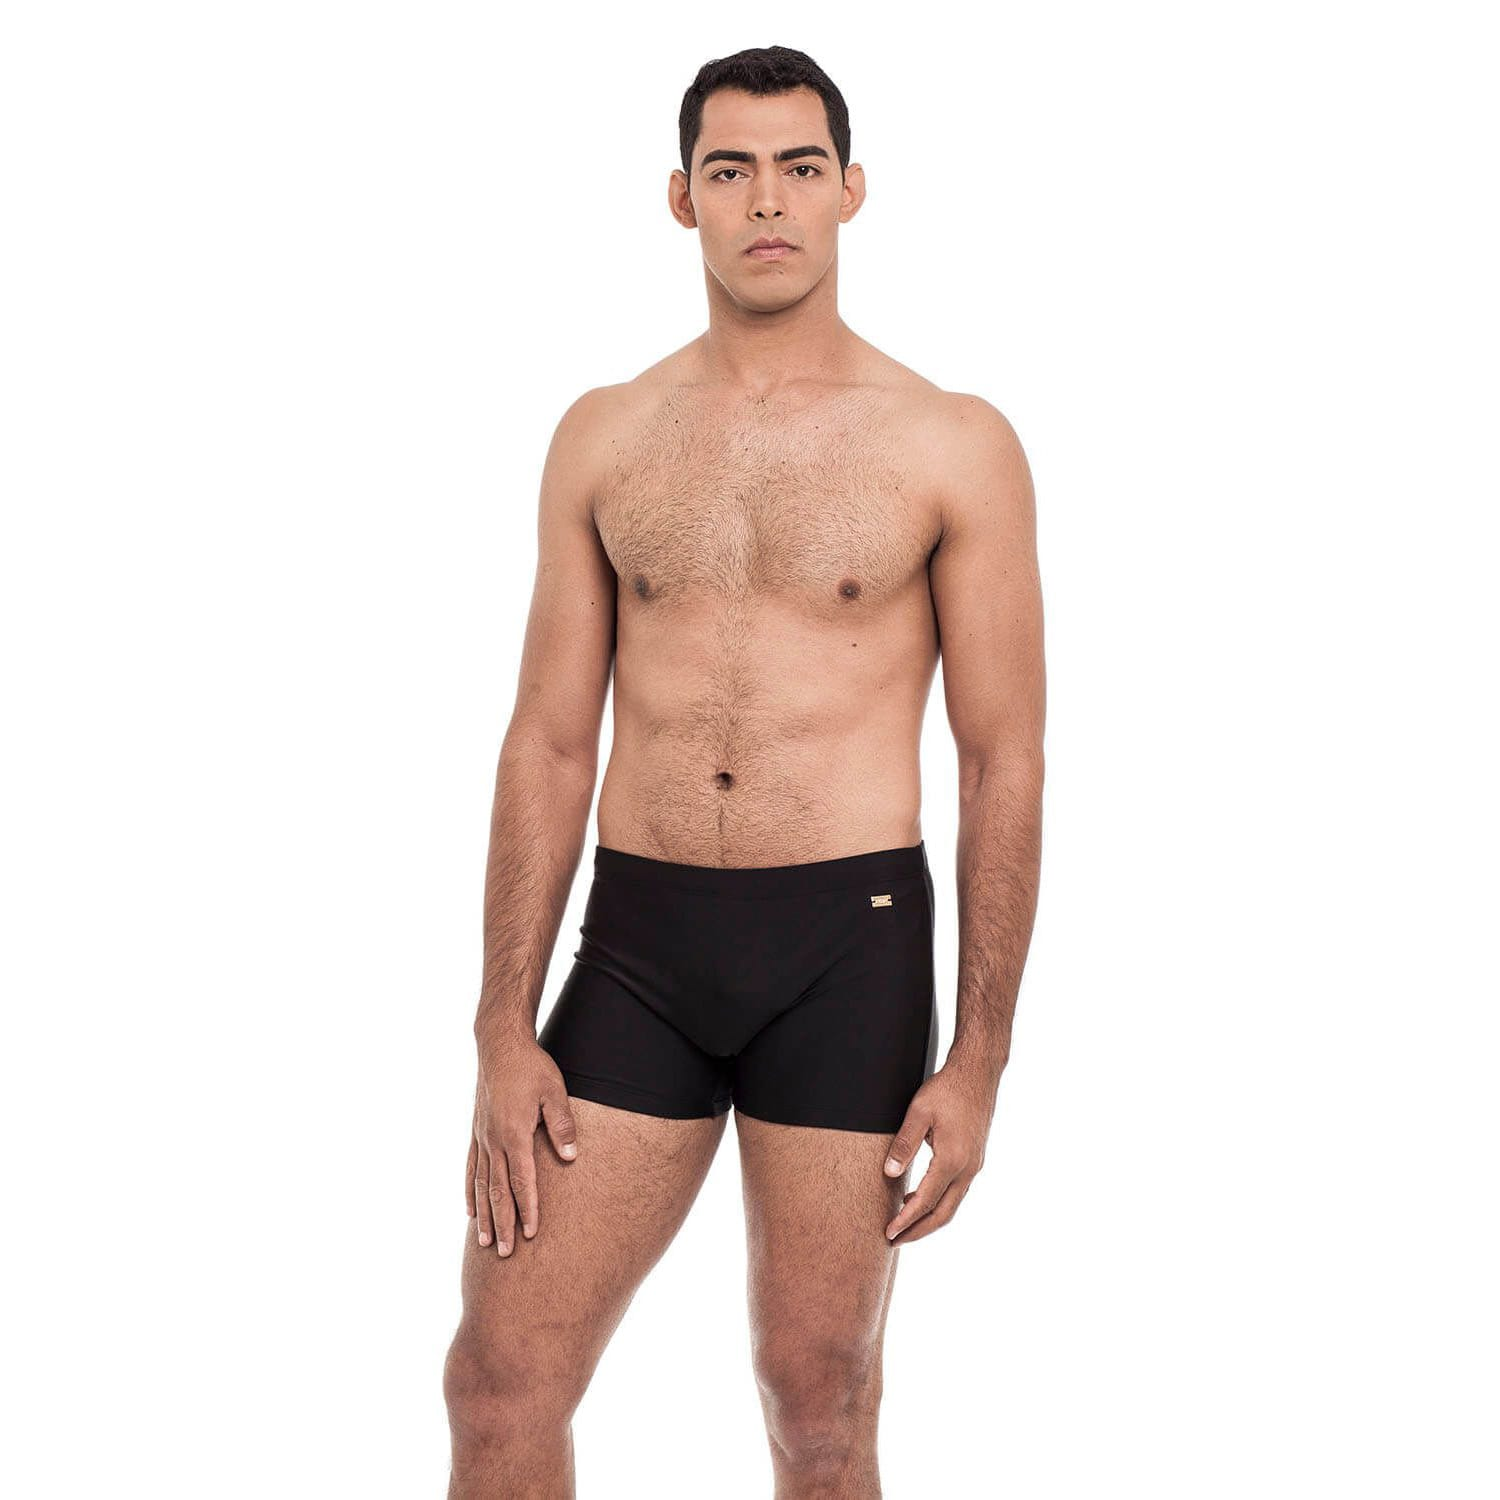 Kit Adulto Camiseta UV + Sunga Adulto